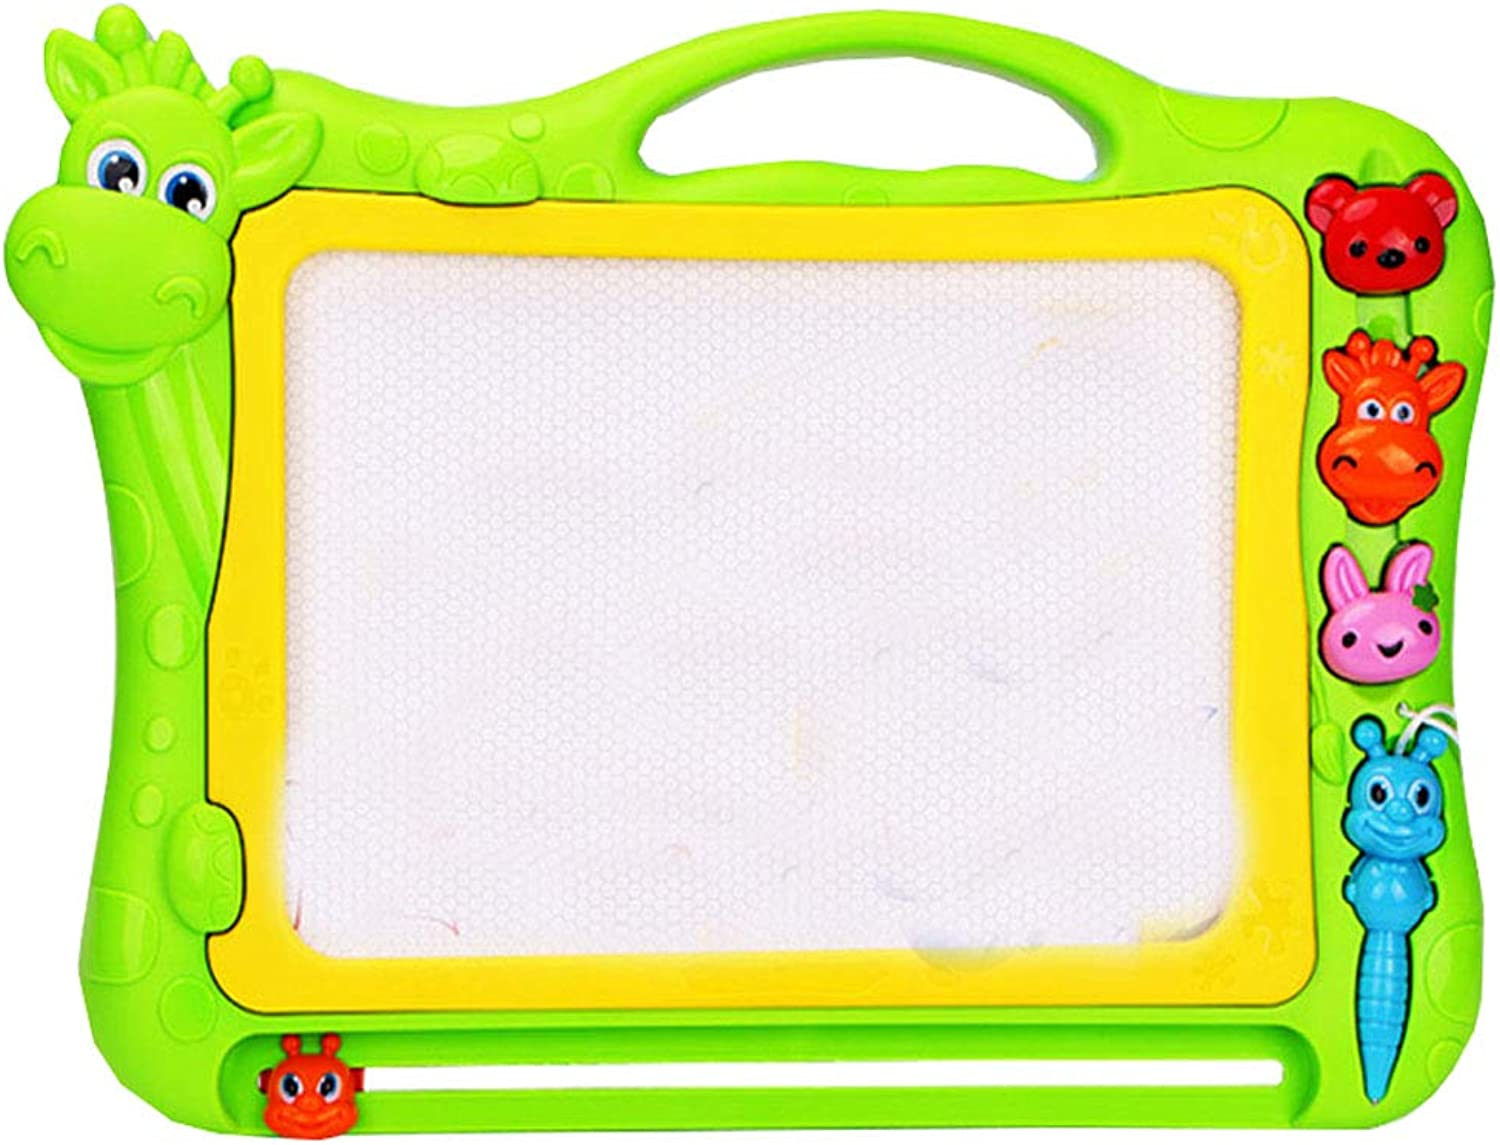 Magnetic Drawing Board,Writing Board,Doodle Board for Kids for Learning,Green,Cow